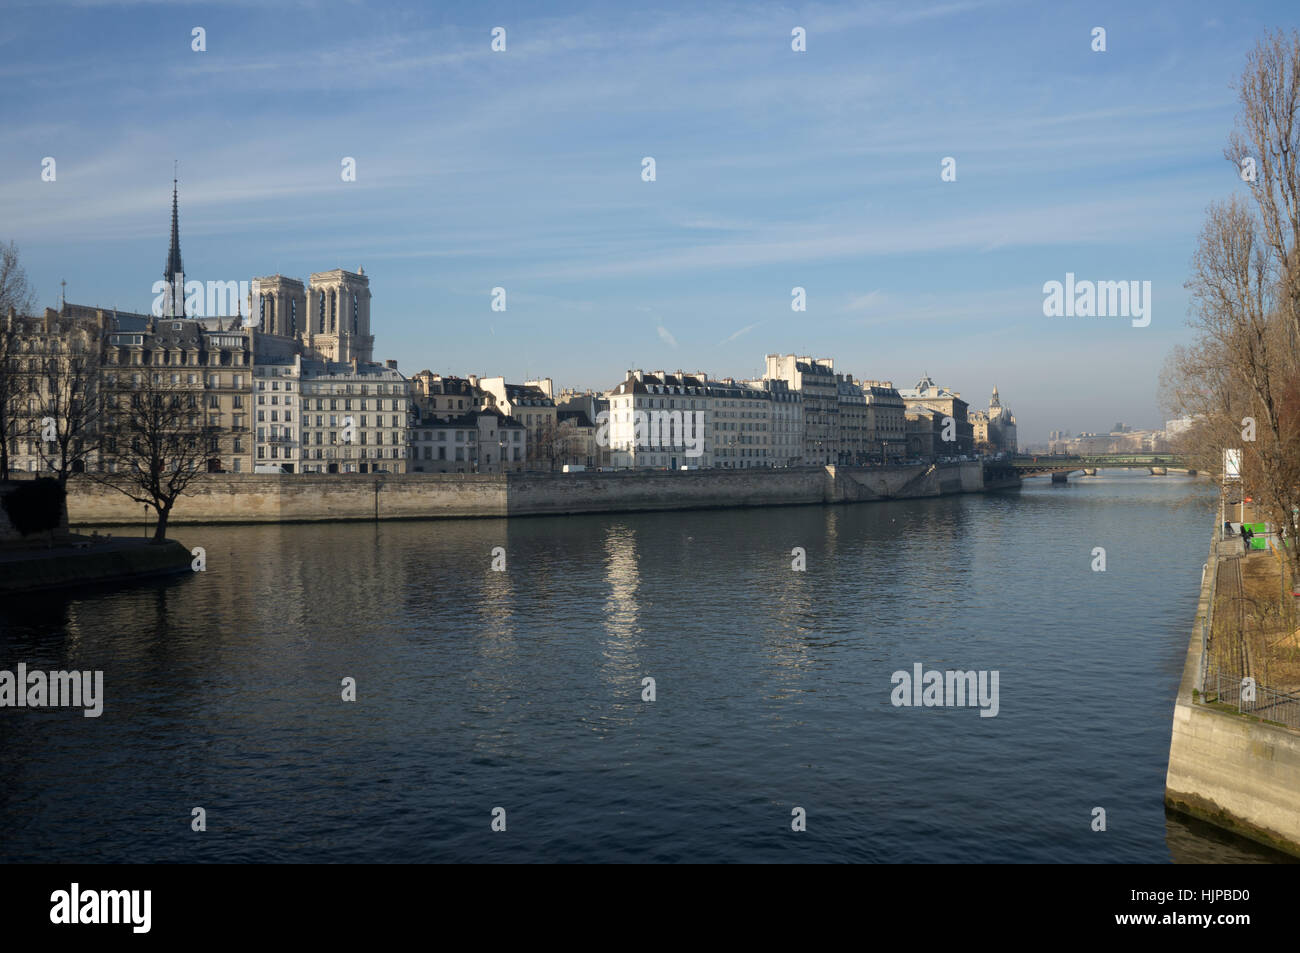 River Seine, Paris looking from Quai de l'Hotel de ville across the bridge to Notre Dame Cathedral. - Stock Image